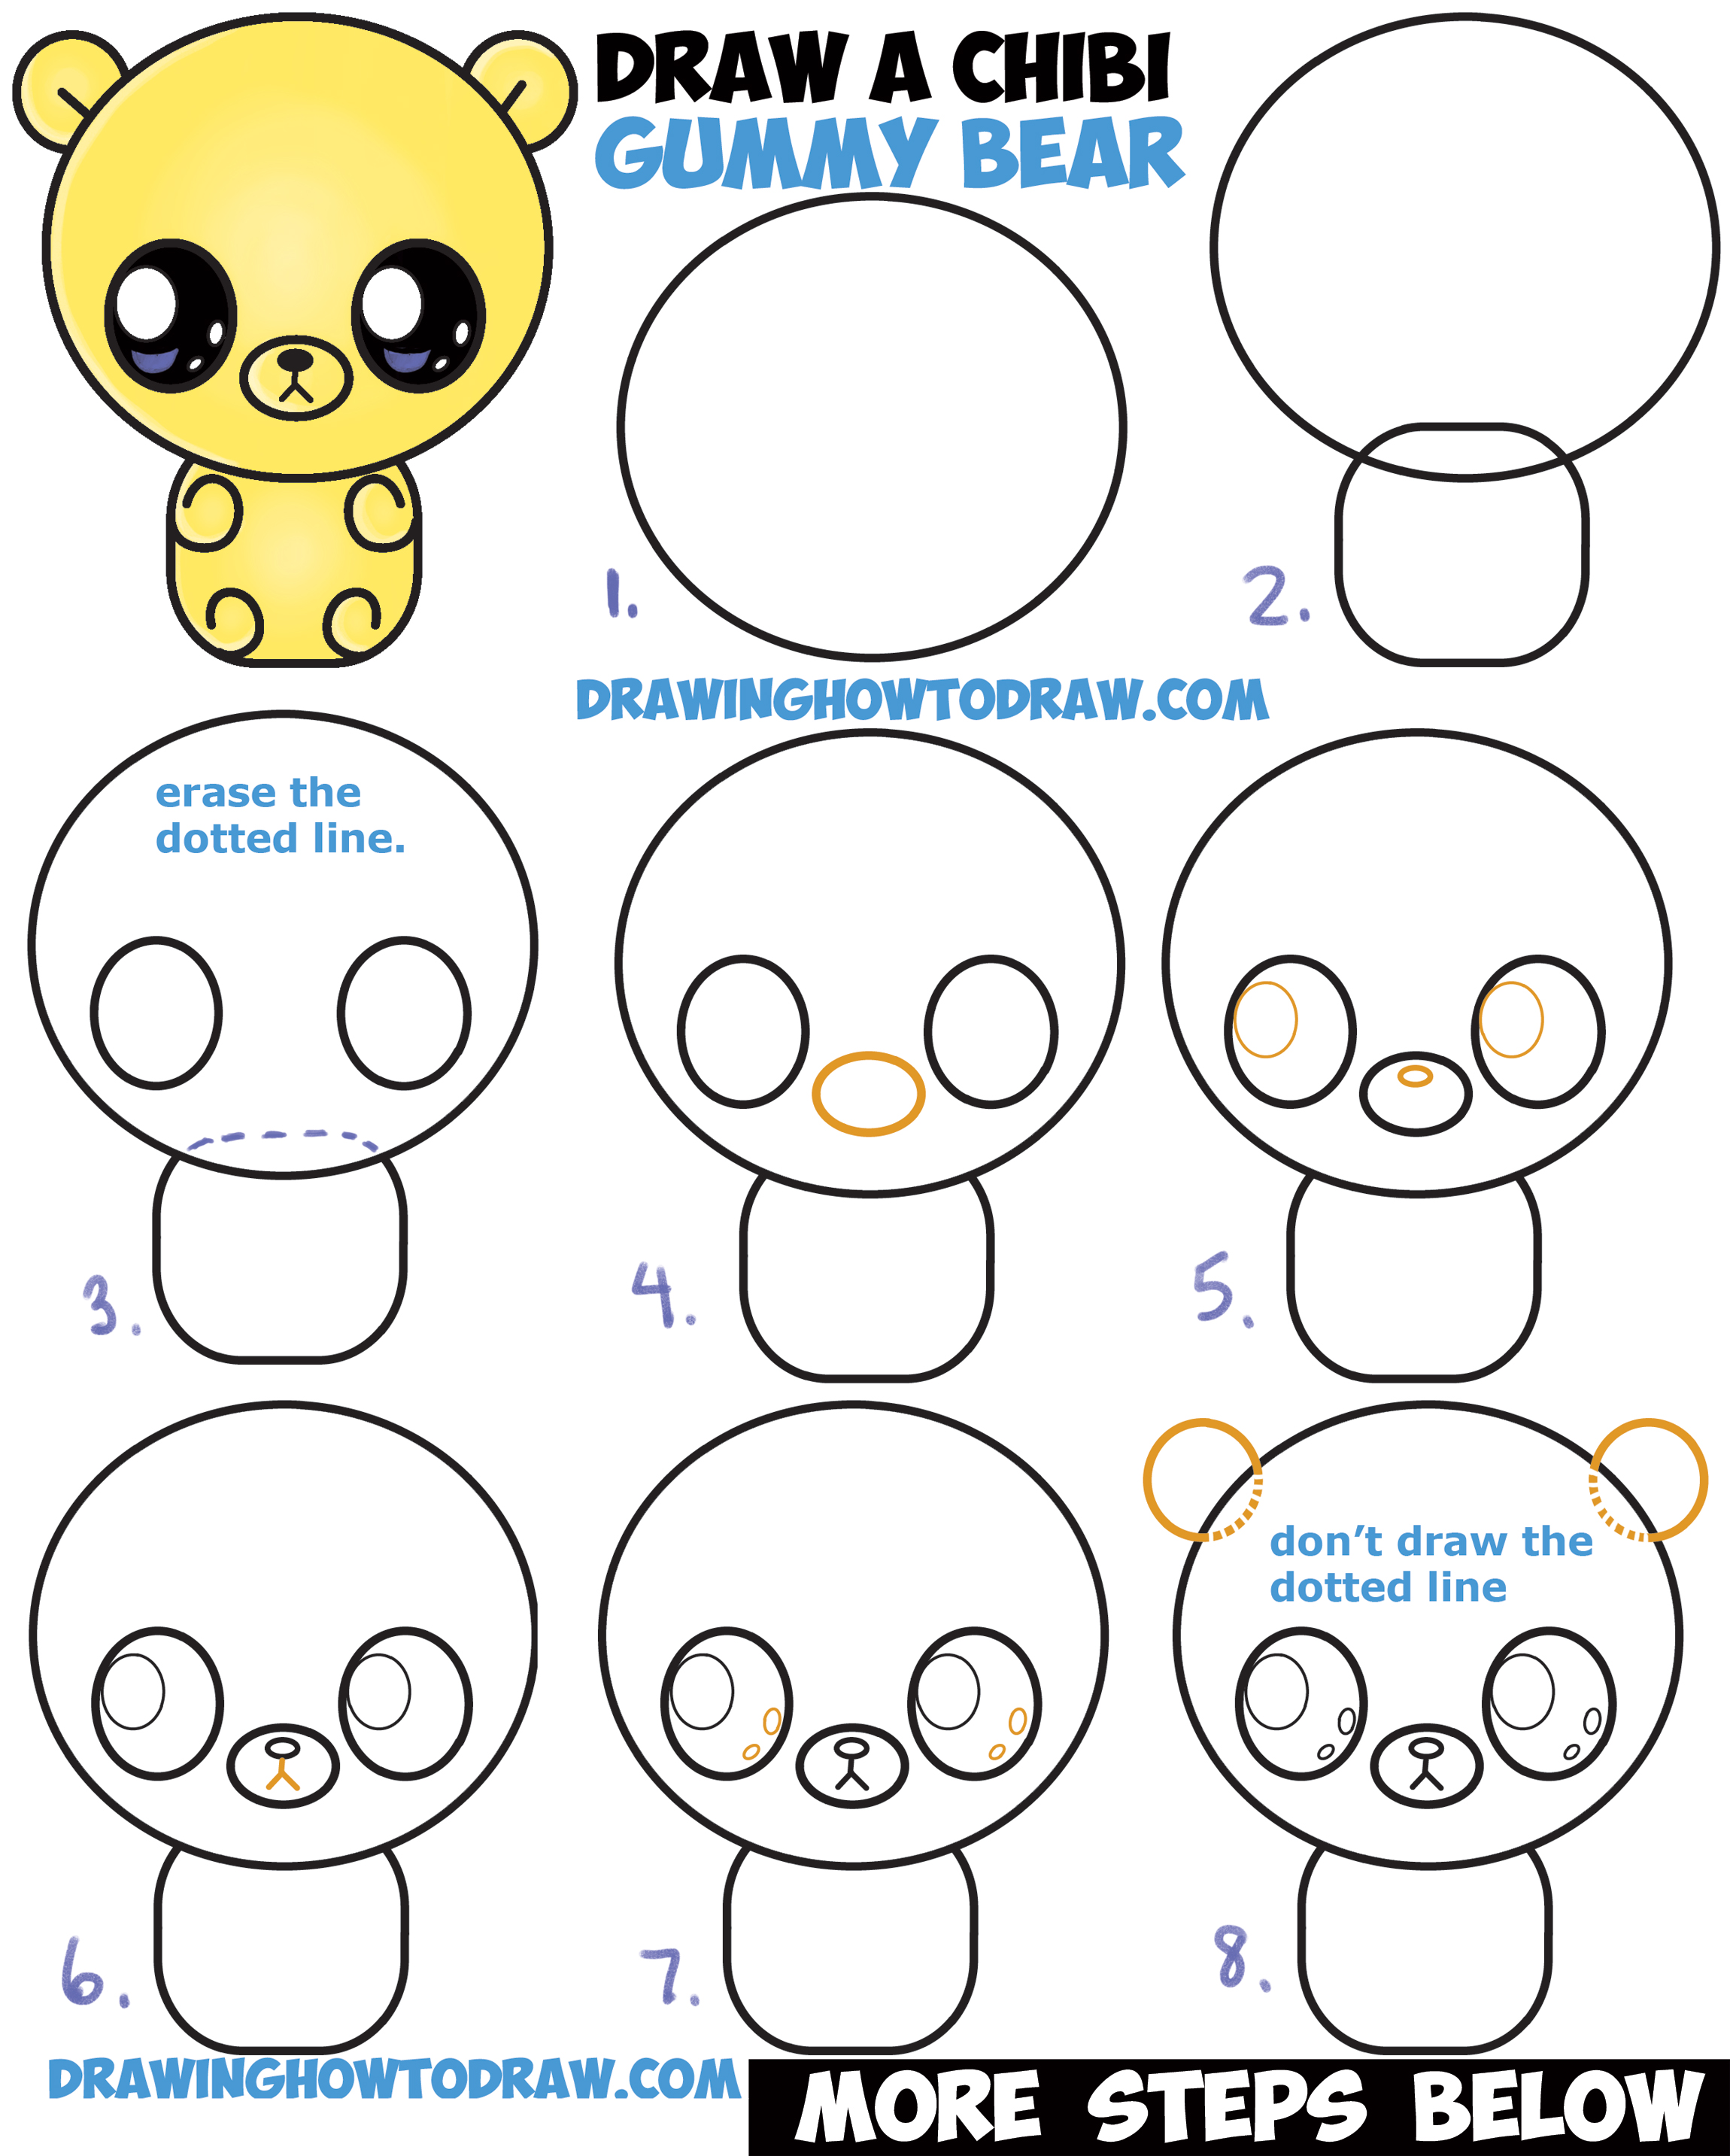 Uncategorized Simple Drawing For Kids Step By Step how to draw a cute chibi kawaii cartoon gummy bear easy step by step